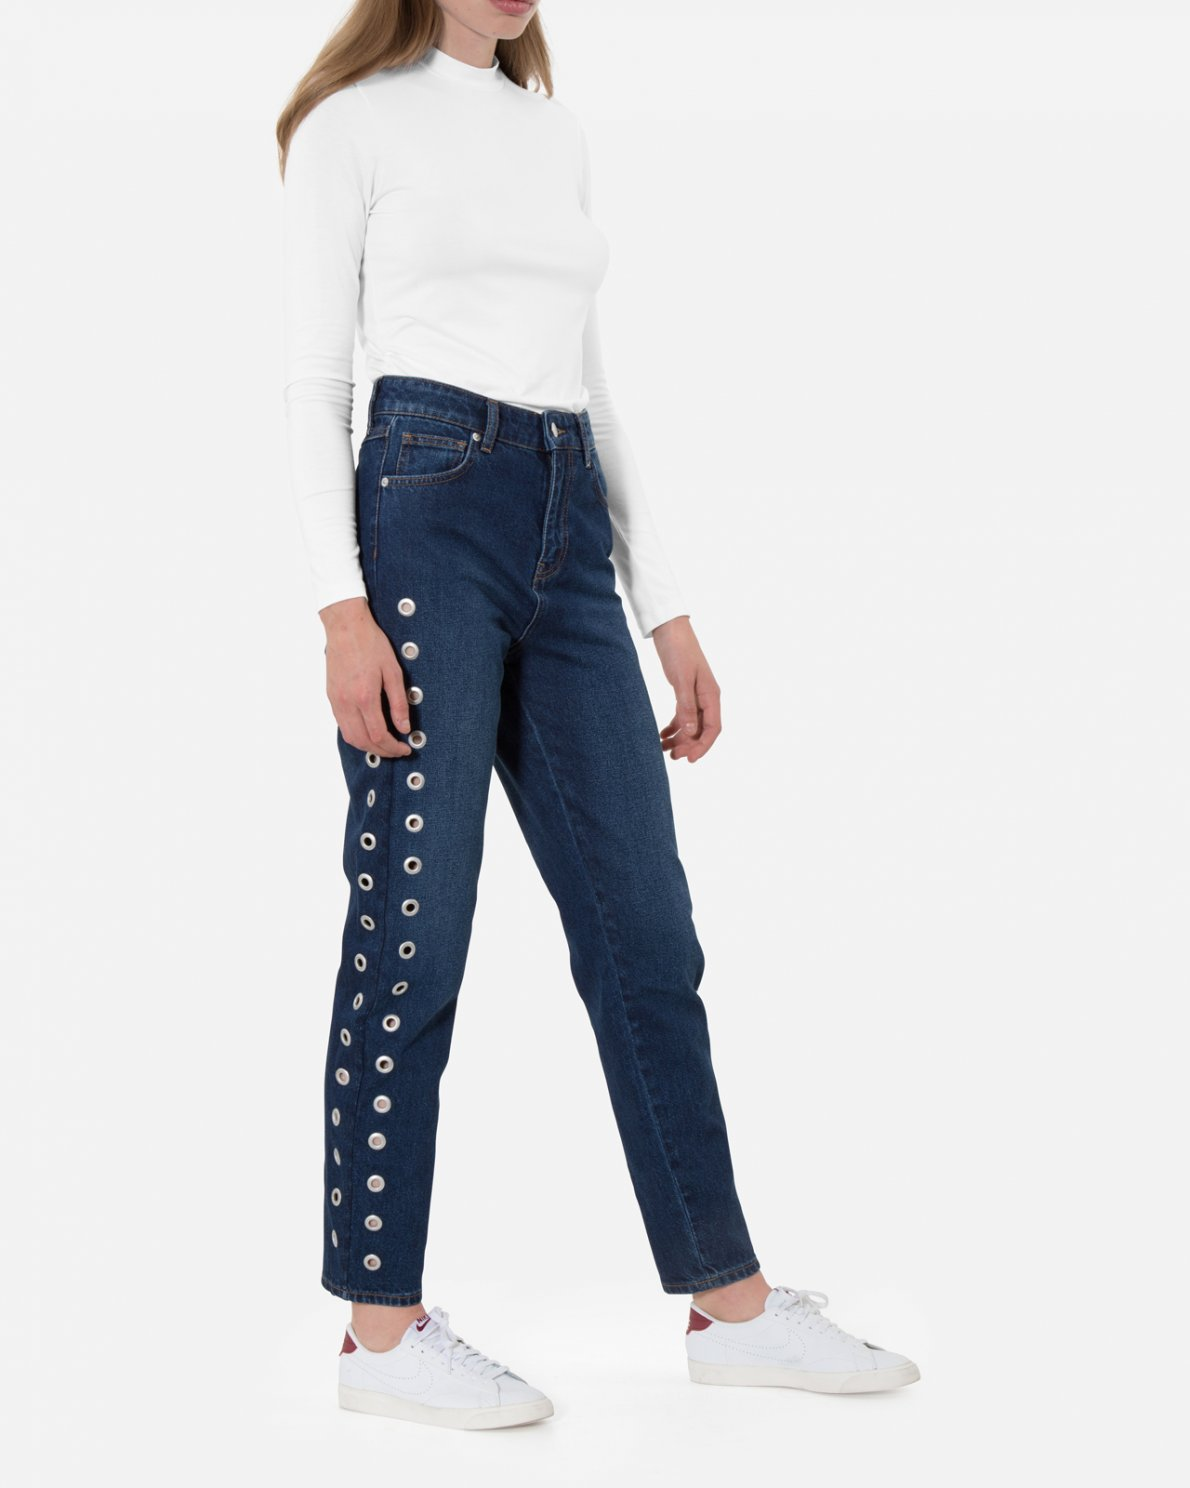 DENIM - Denim trousers Moss Copenhagen